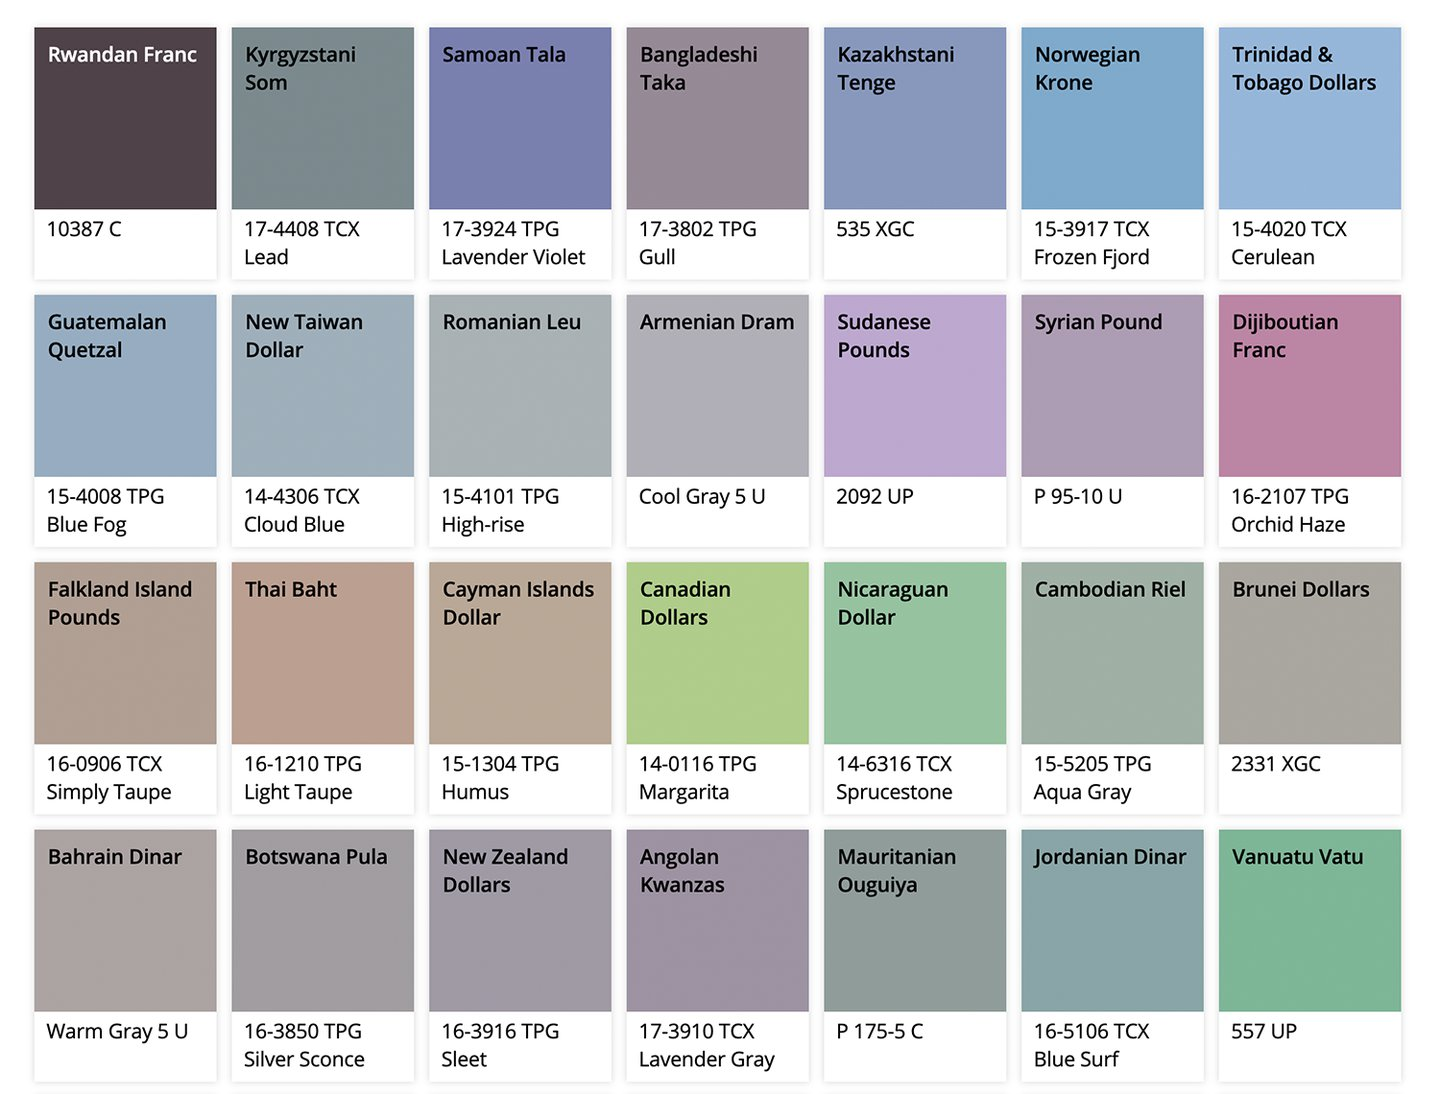 Study reveals the Pantone references of banknotes around the world